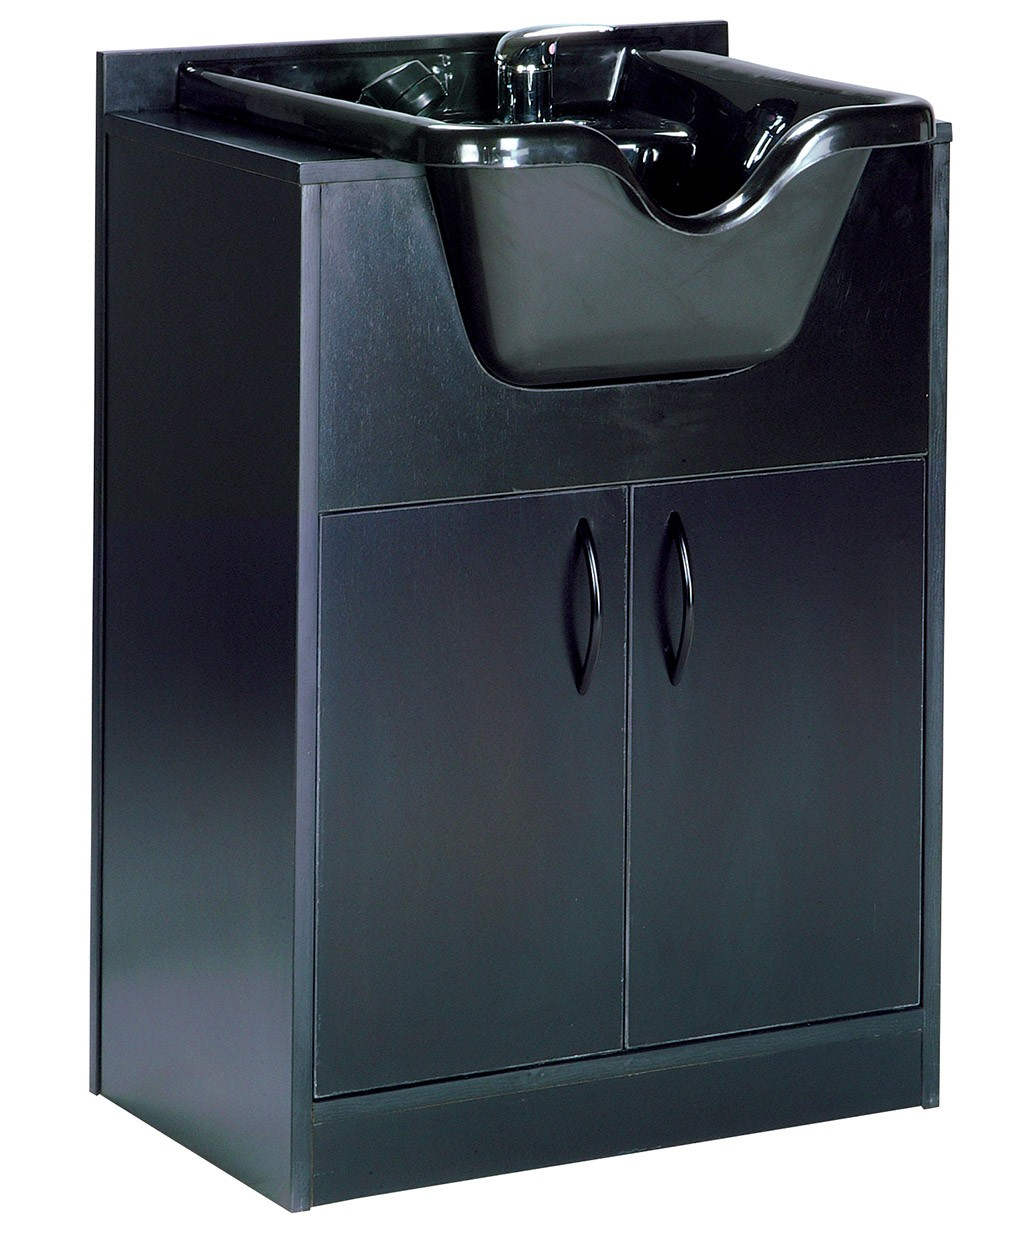 Olla Shampoo Bowl And Cabinet